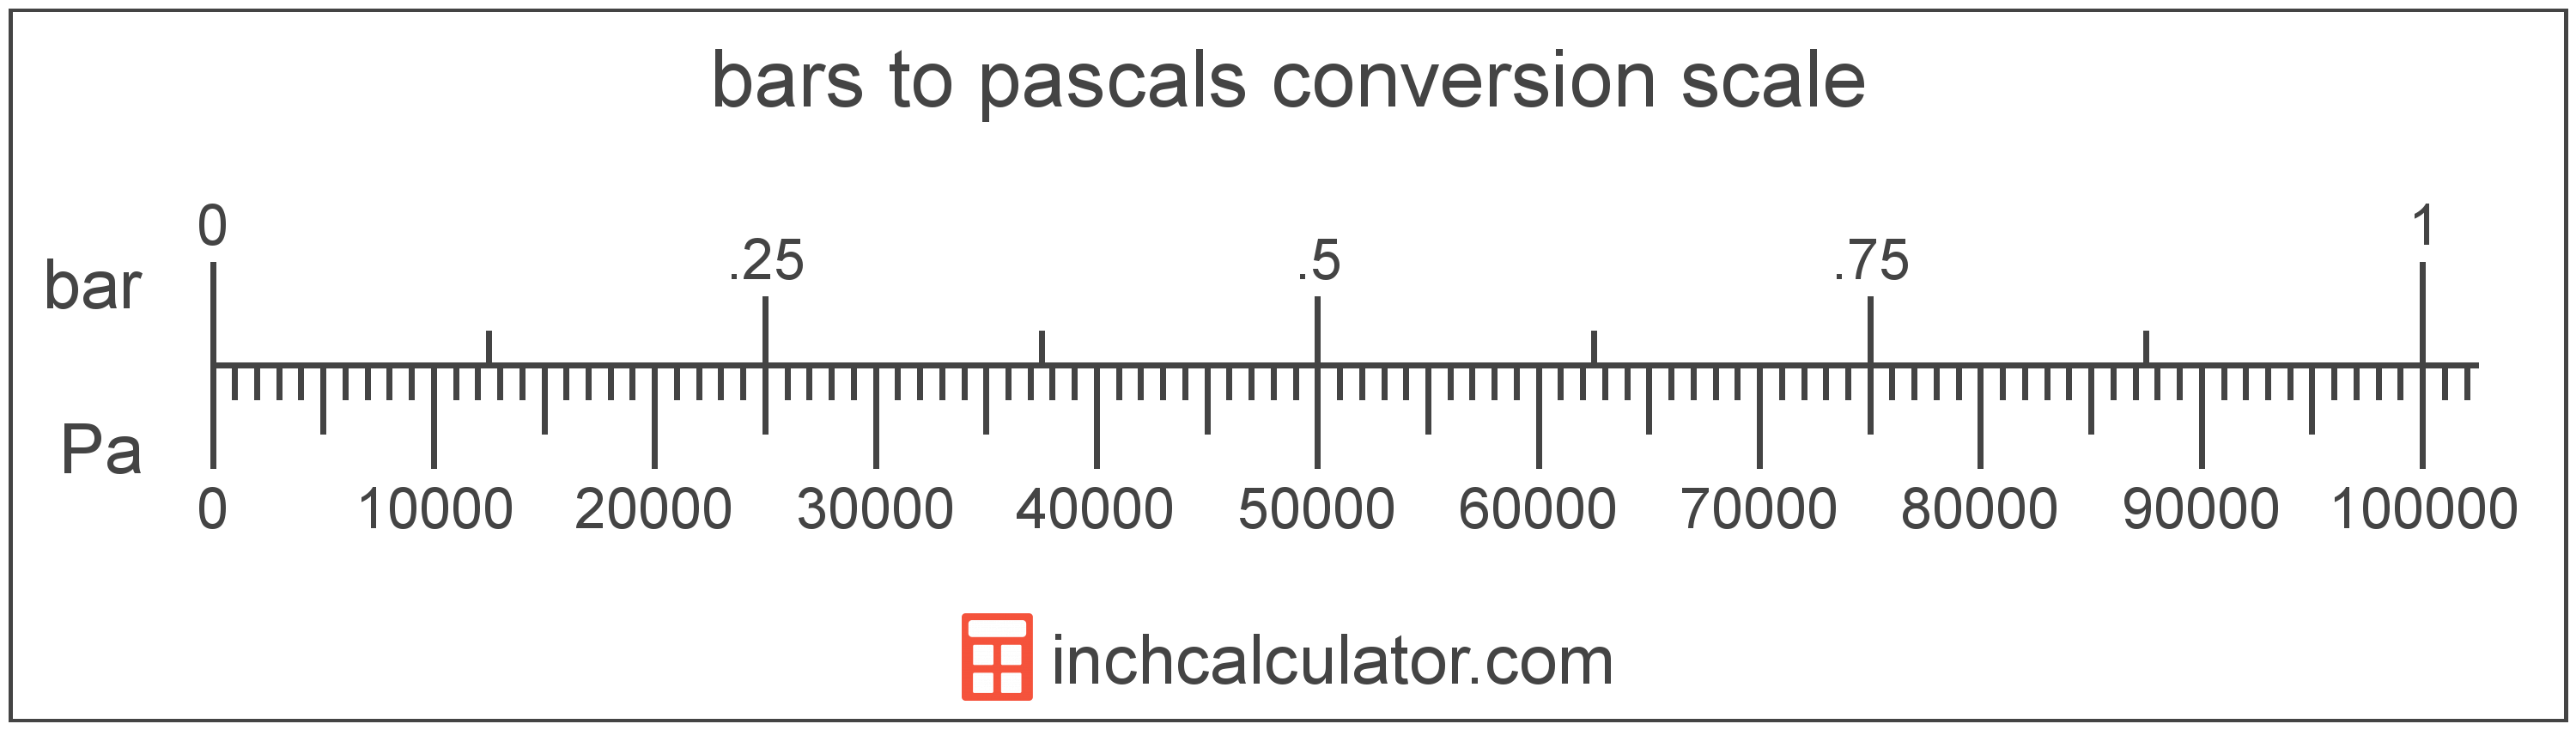 conversion scale showing bars and equivalent pascals pressure values